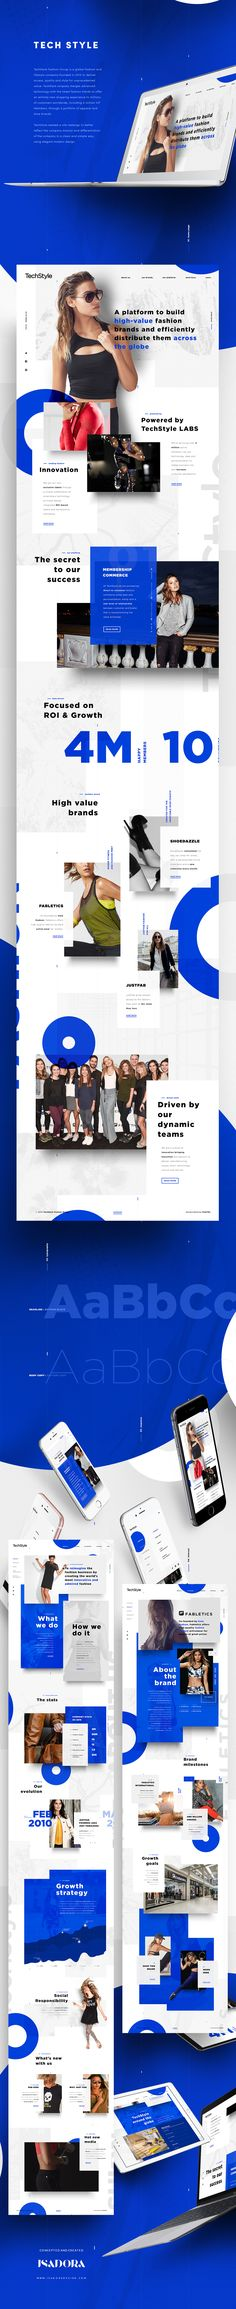 TechStyle is an innovative technology company that is using data and personalization to reimagine the fashion business. The project revitalizes the company's corporate website in order to better reflect the brand mission through a new strategic and elegan…